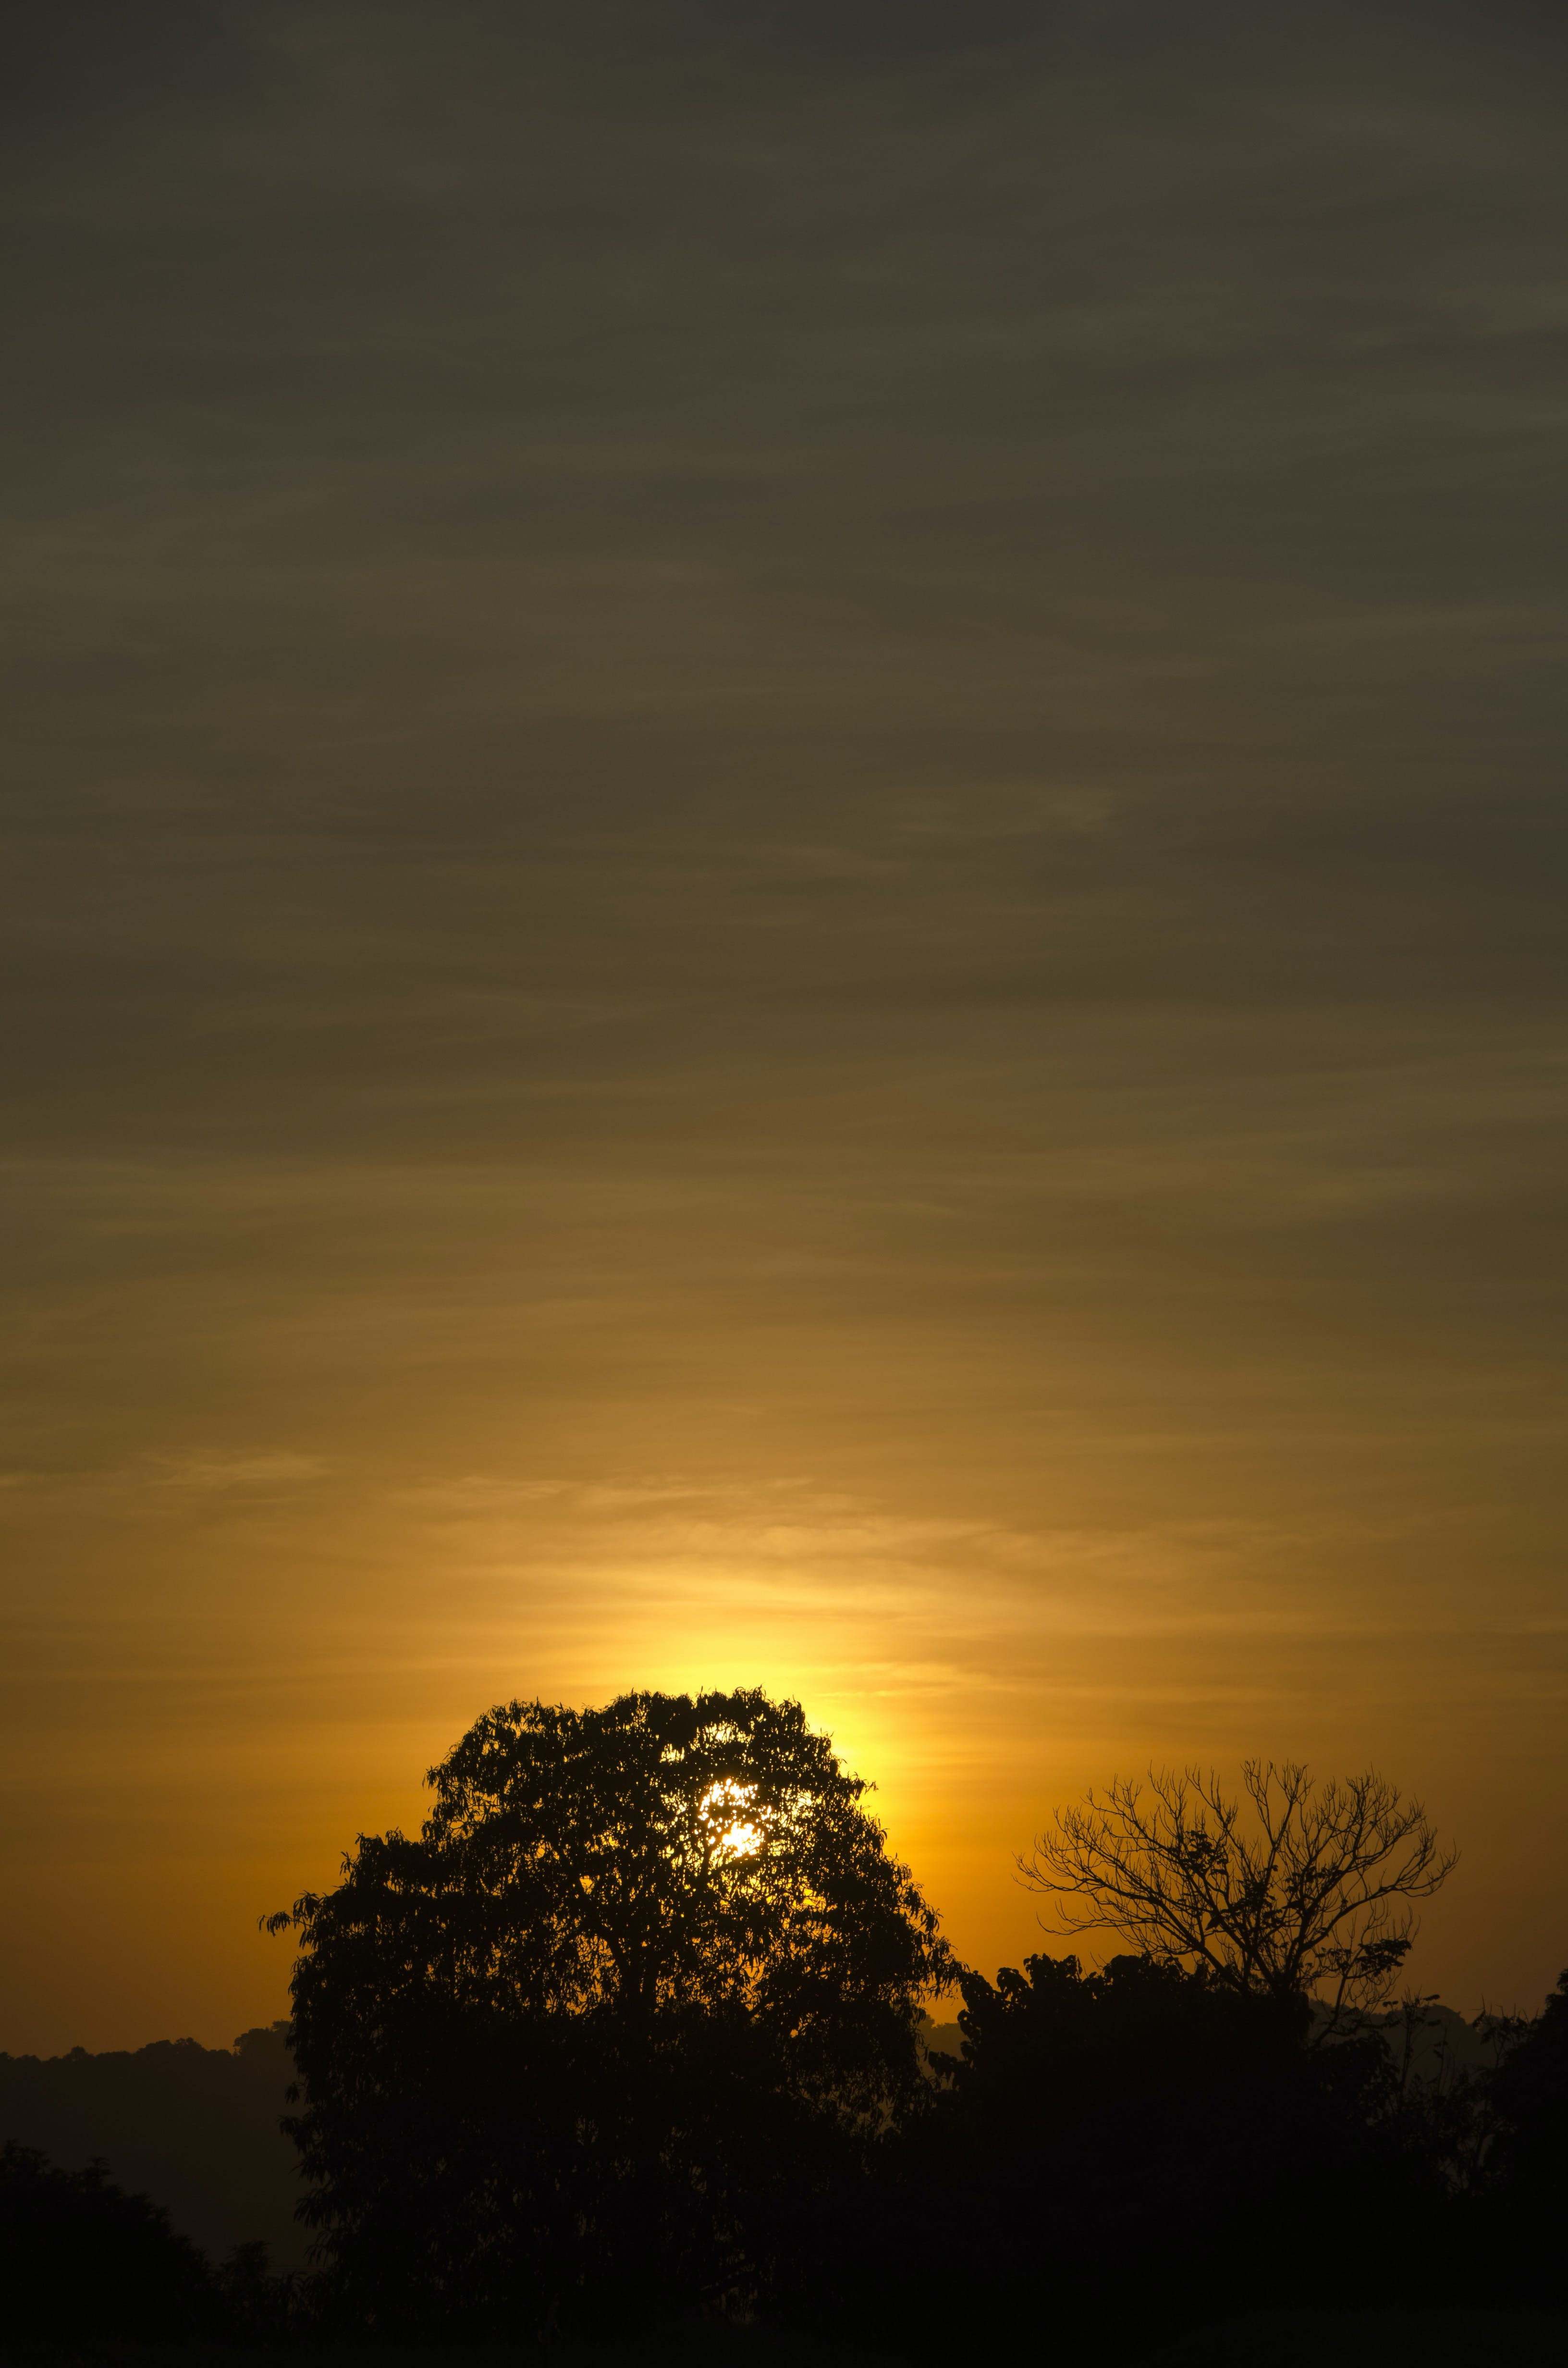 Silhouette of Trees Against Orange Sun during Sunsset